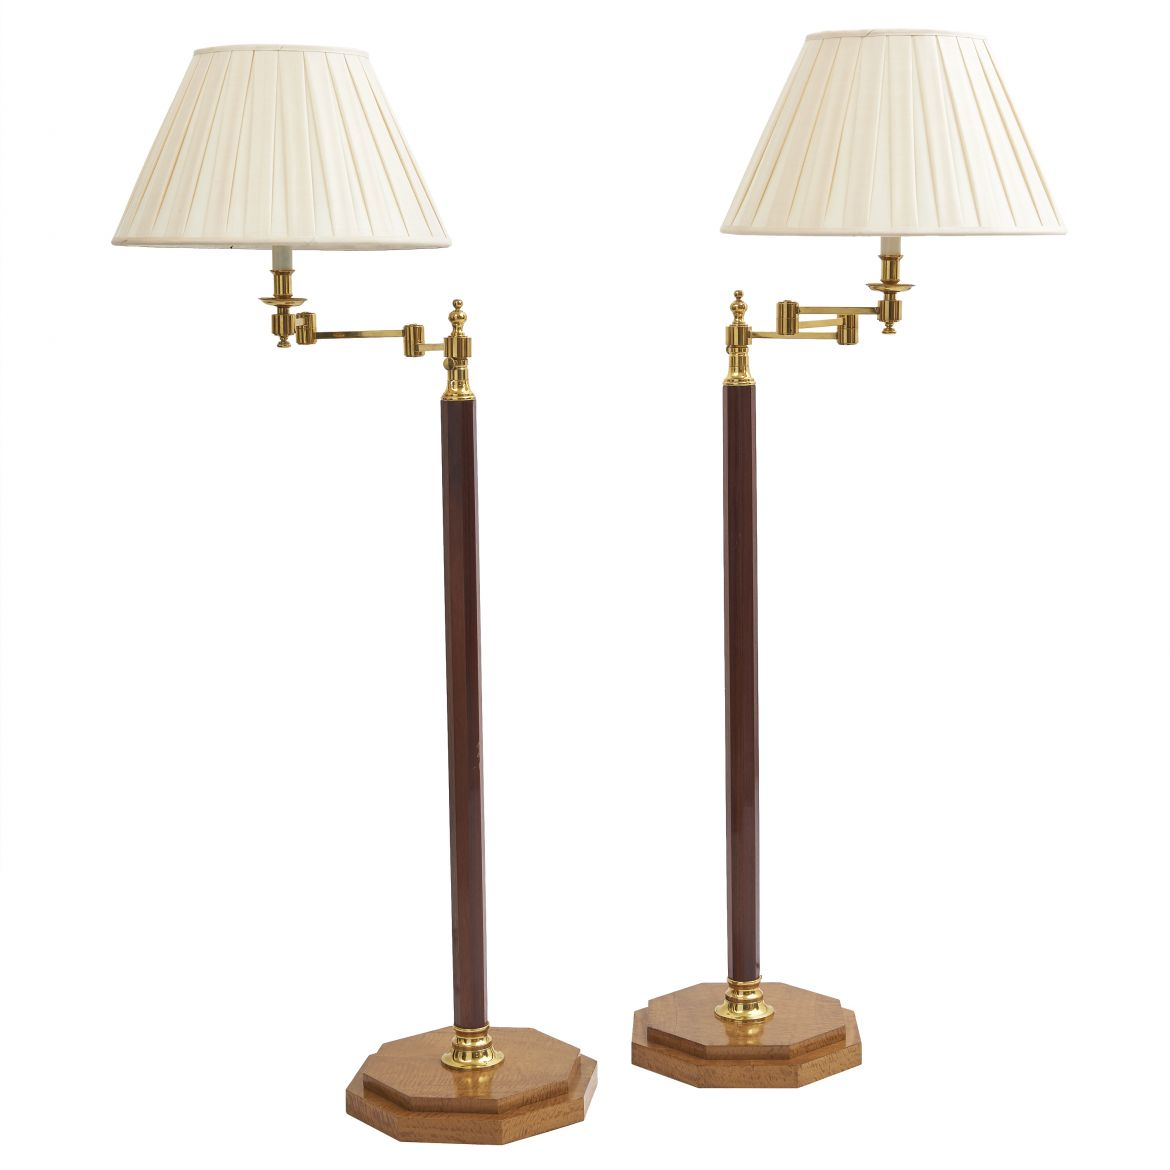 Pair wooden standard lamps